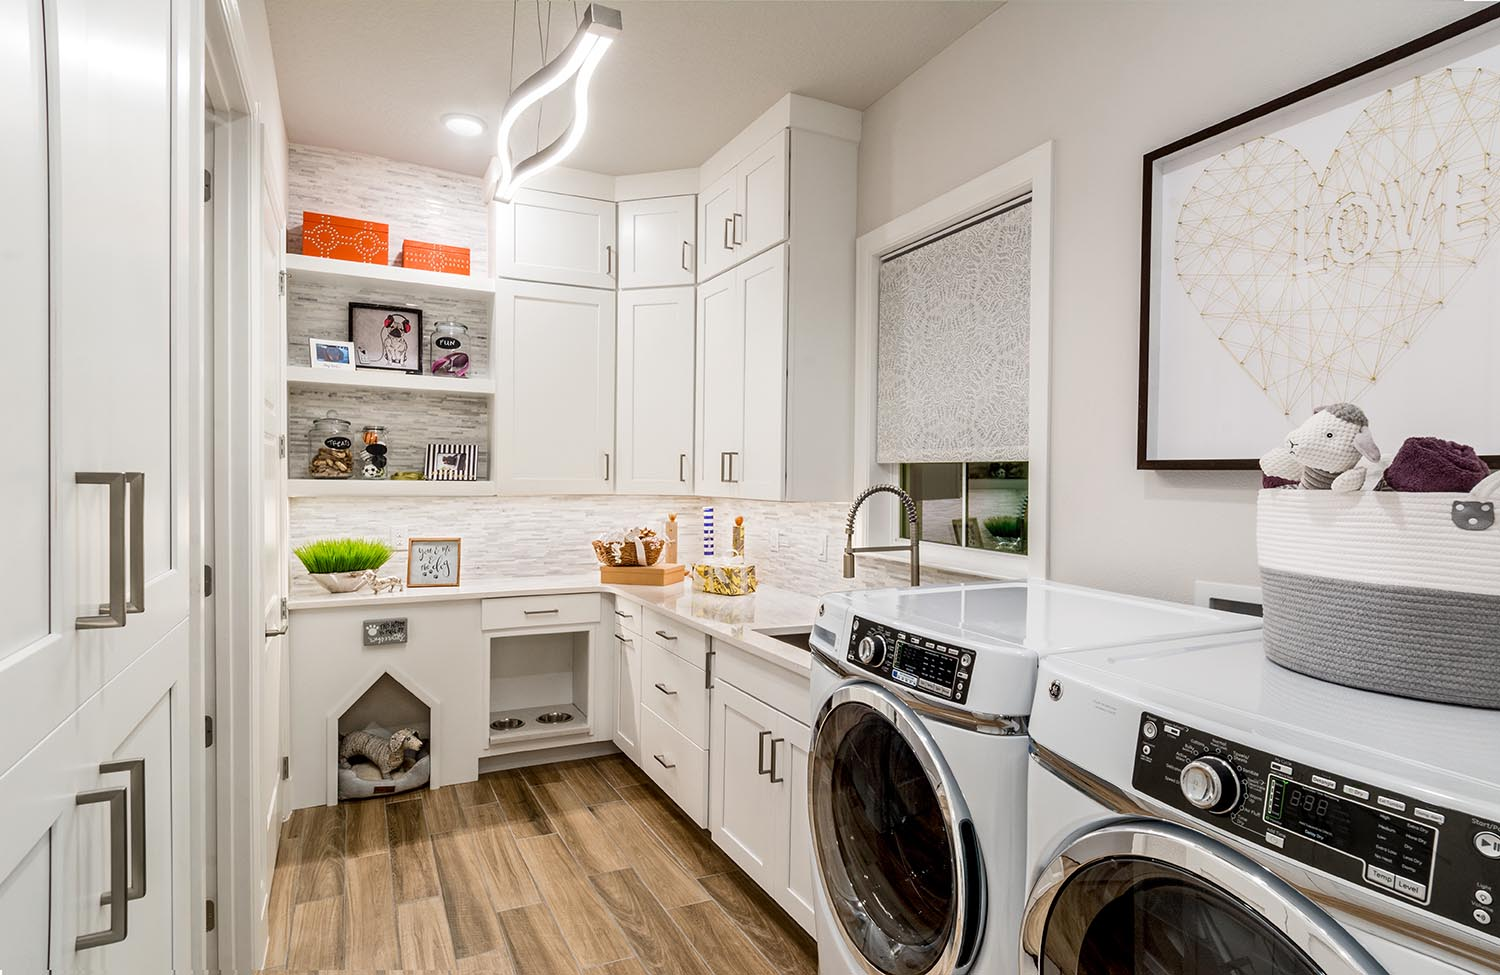 For Most Homeowners Laundry Isn T Their Favorite C This Is Why Ers Will See The Value Of A Connected When They Walk Your Floorplans